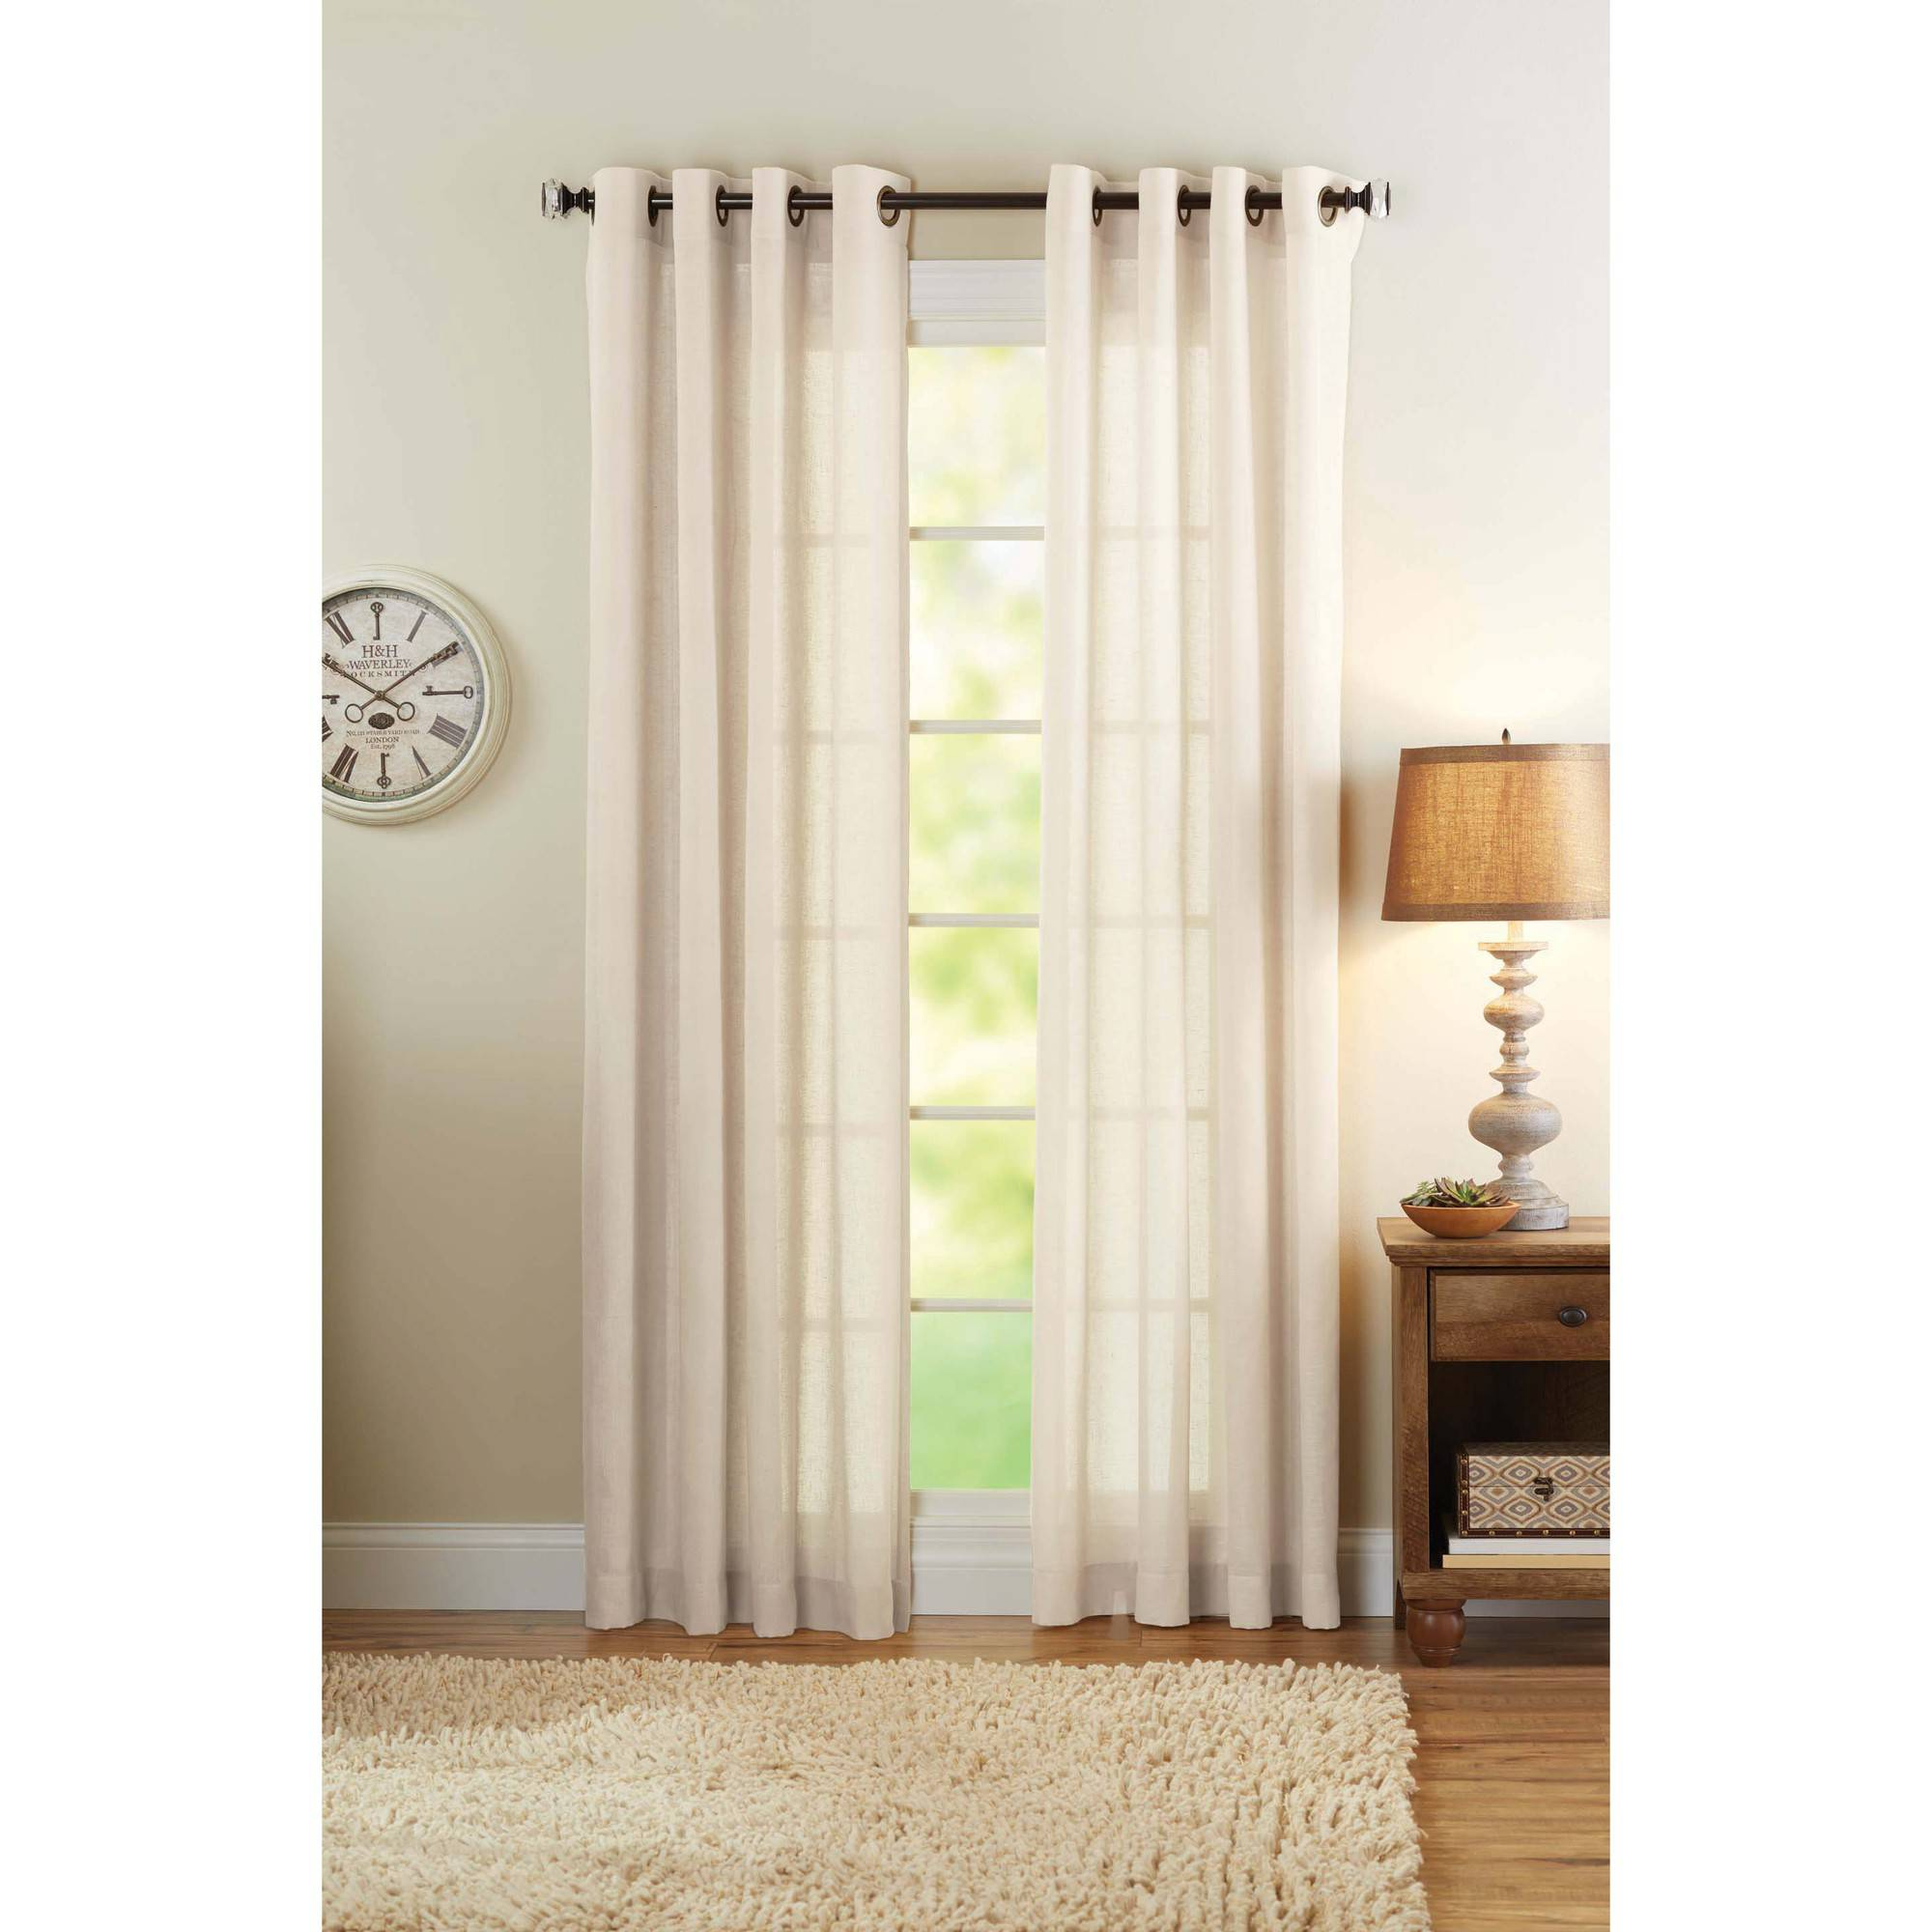 Charming Better Homes And Gardens Semi Sheer Grommet Curtain Panel, Bleached Linen